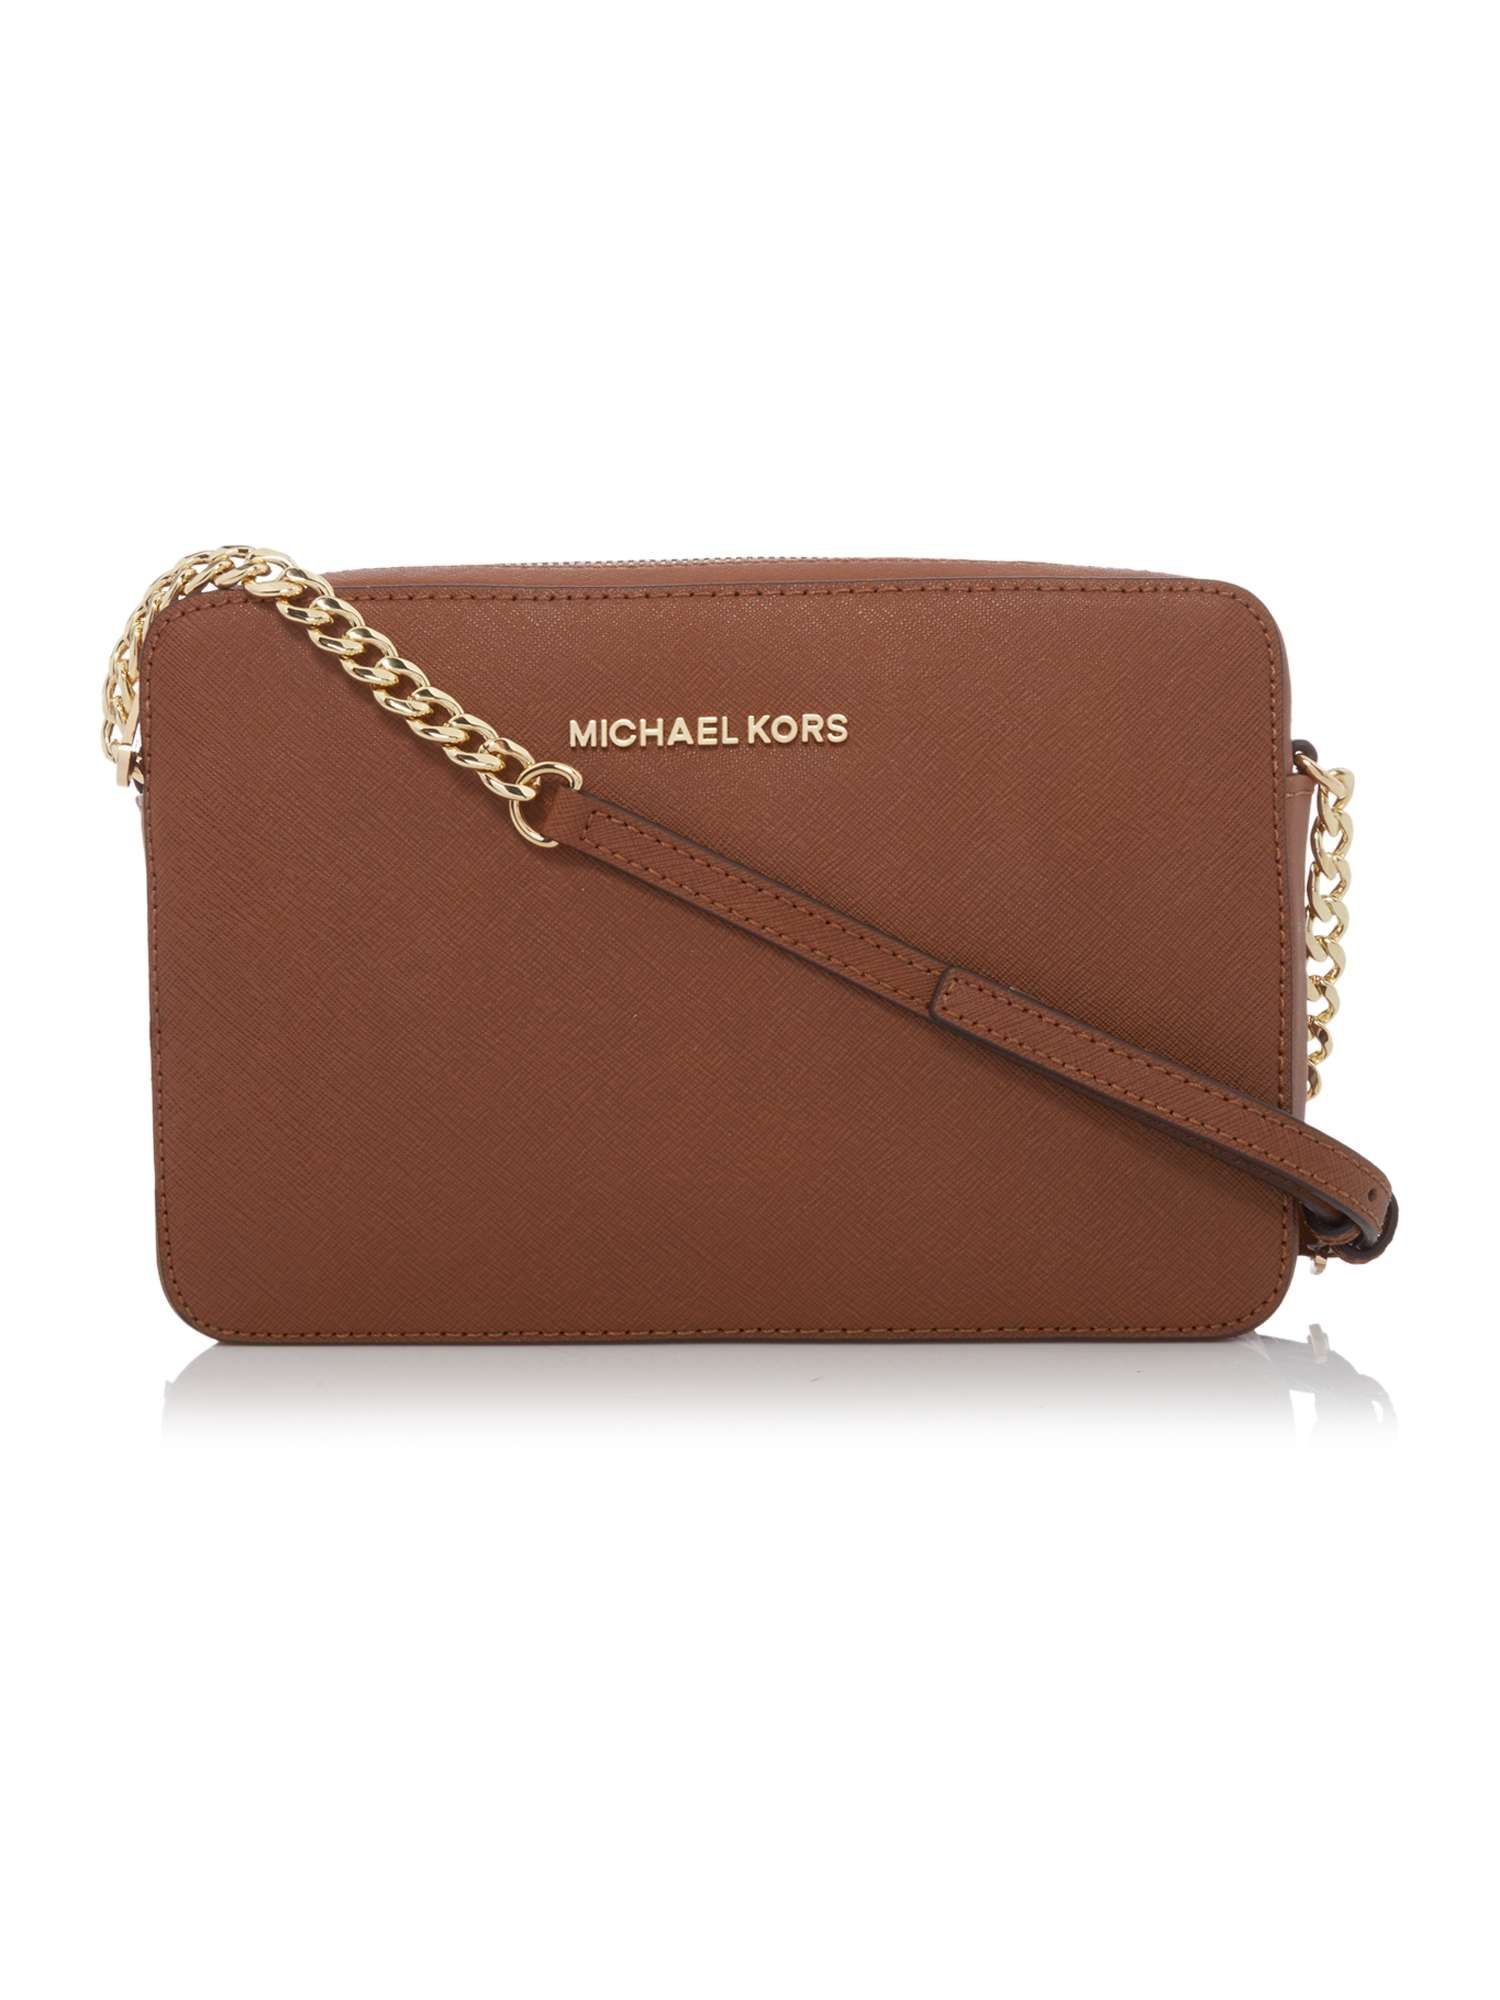 michael kors crossbody bag house of fraser shopping list in 2018 rh pinterest com